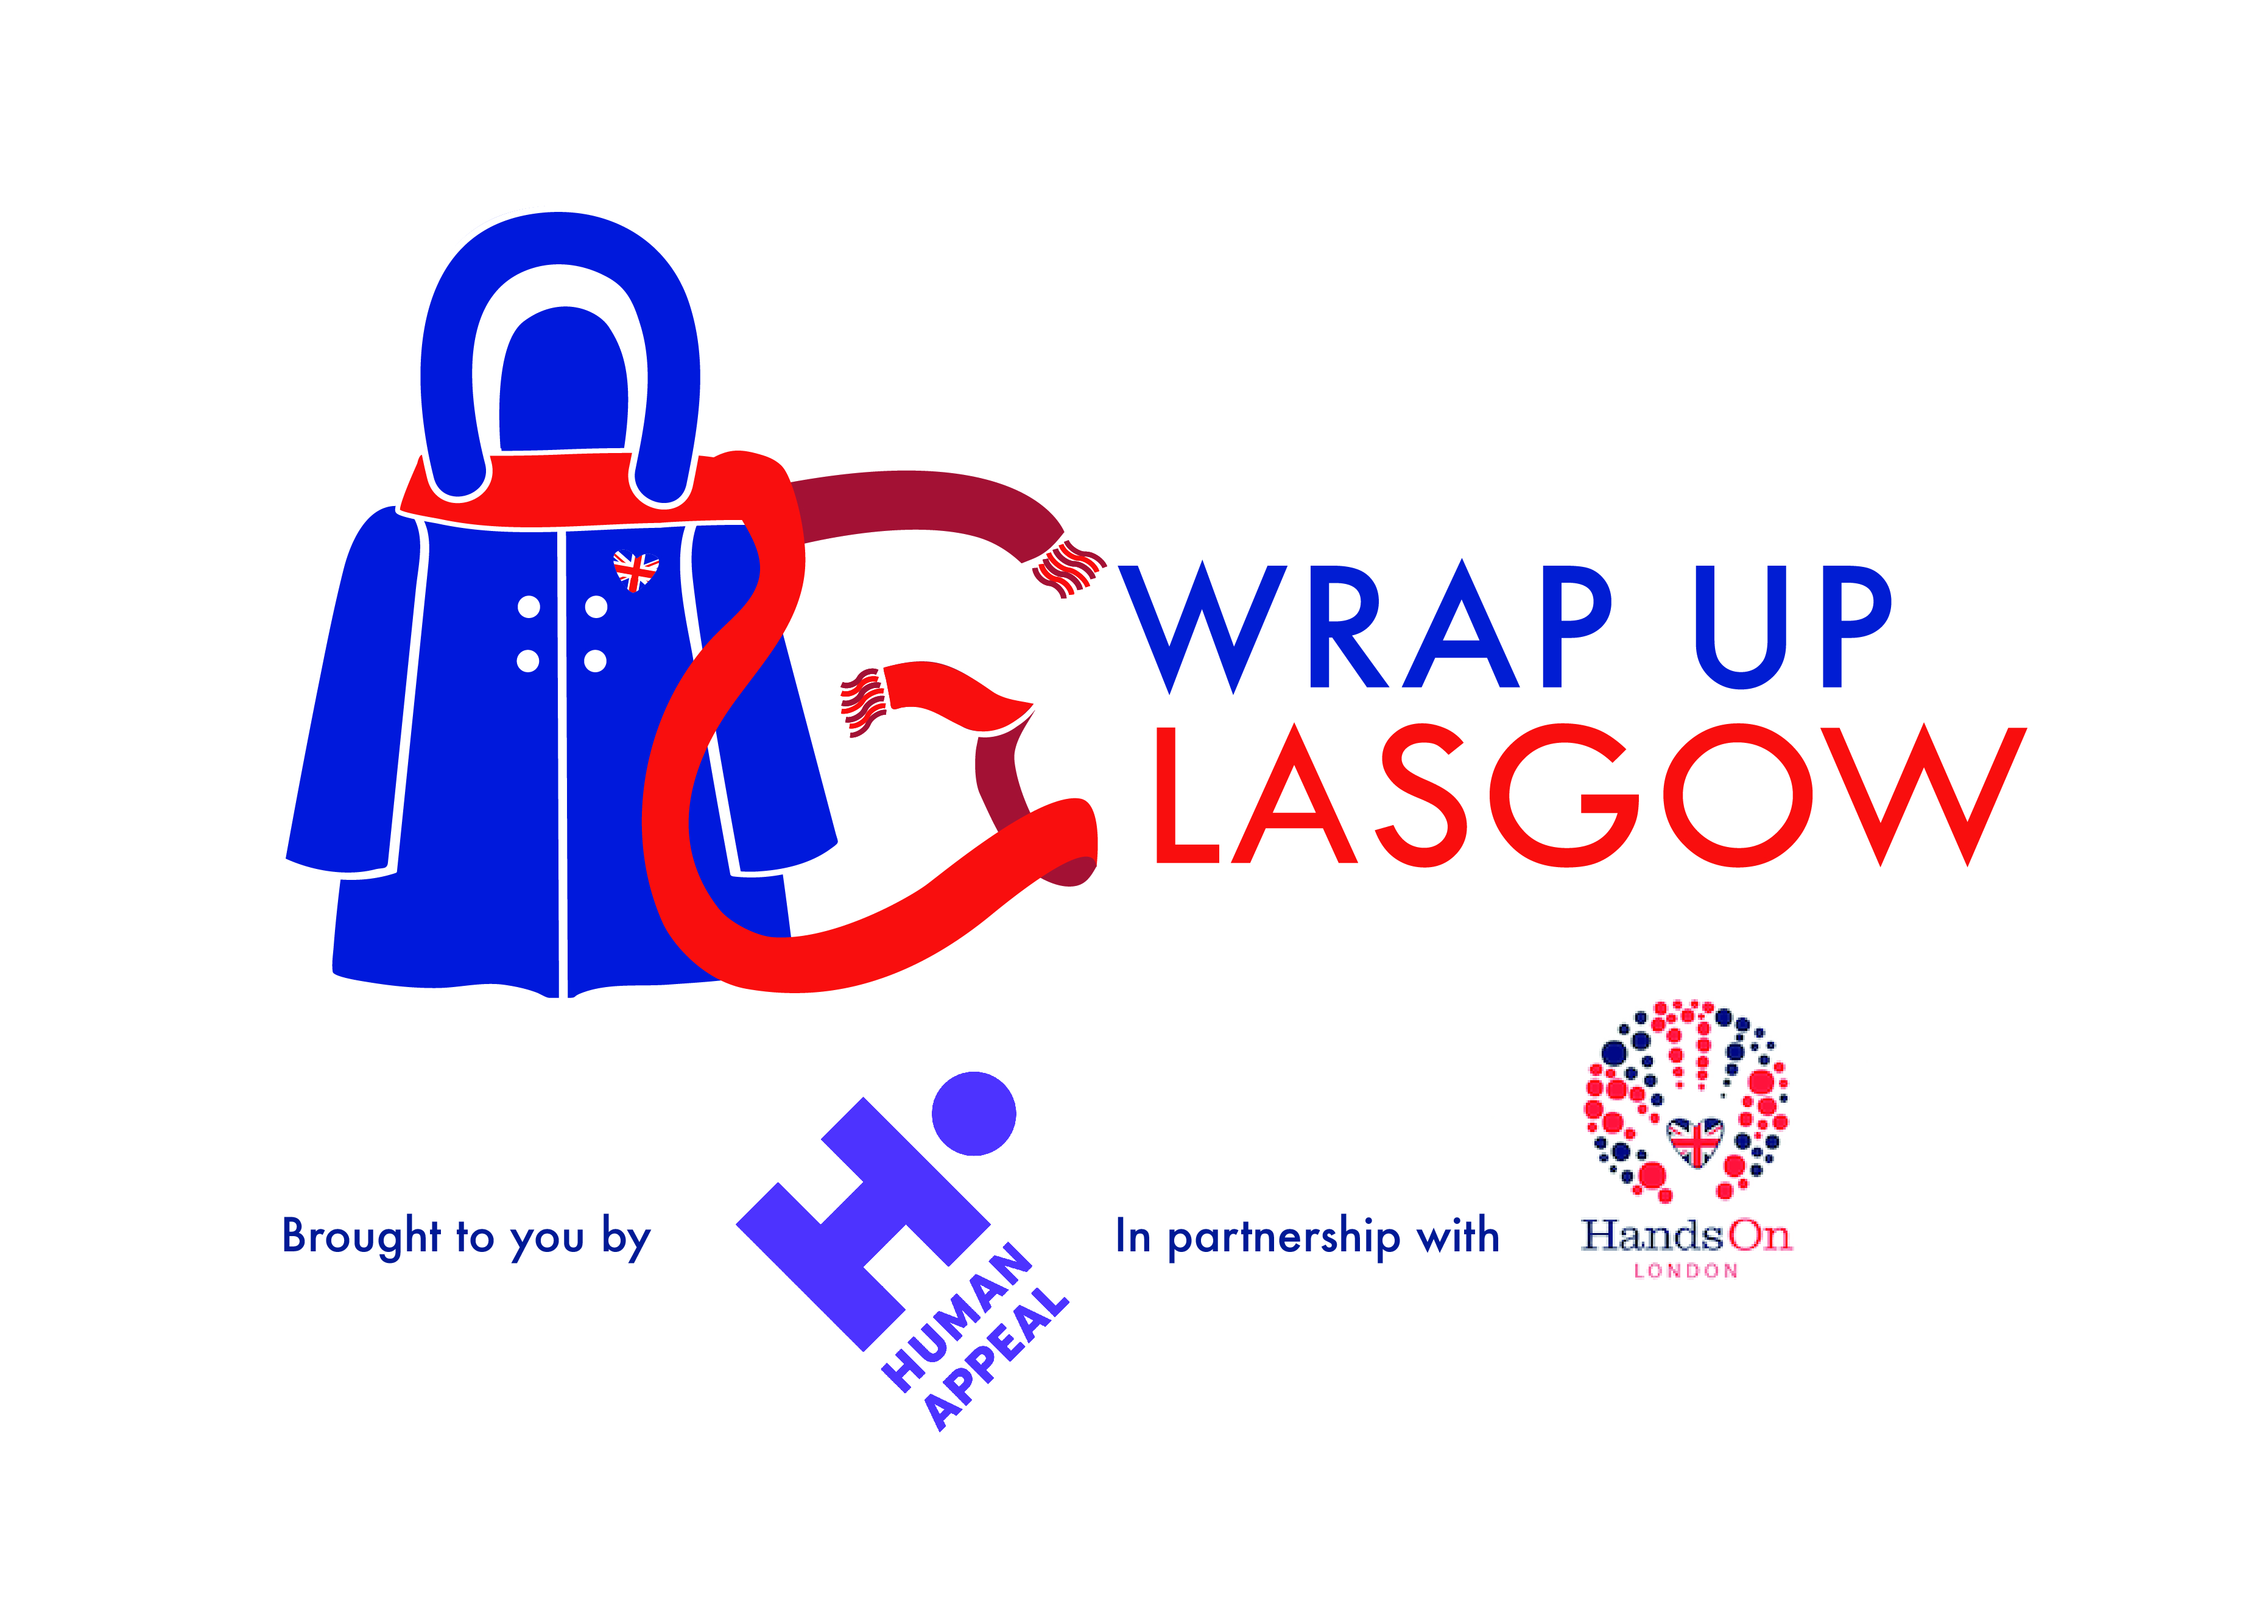 Wrap Up Glasgow